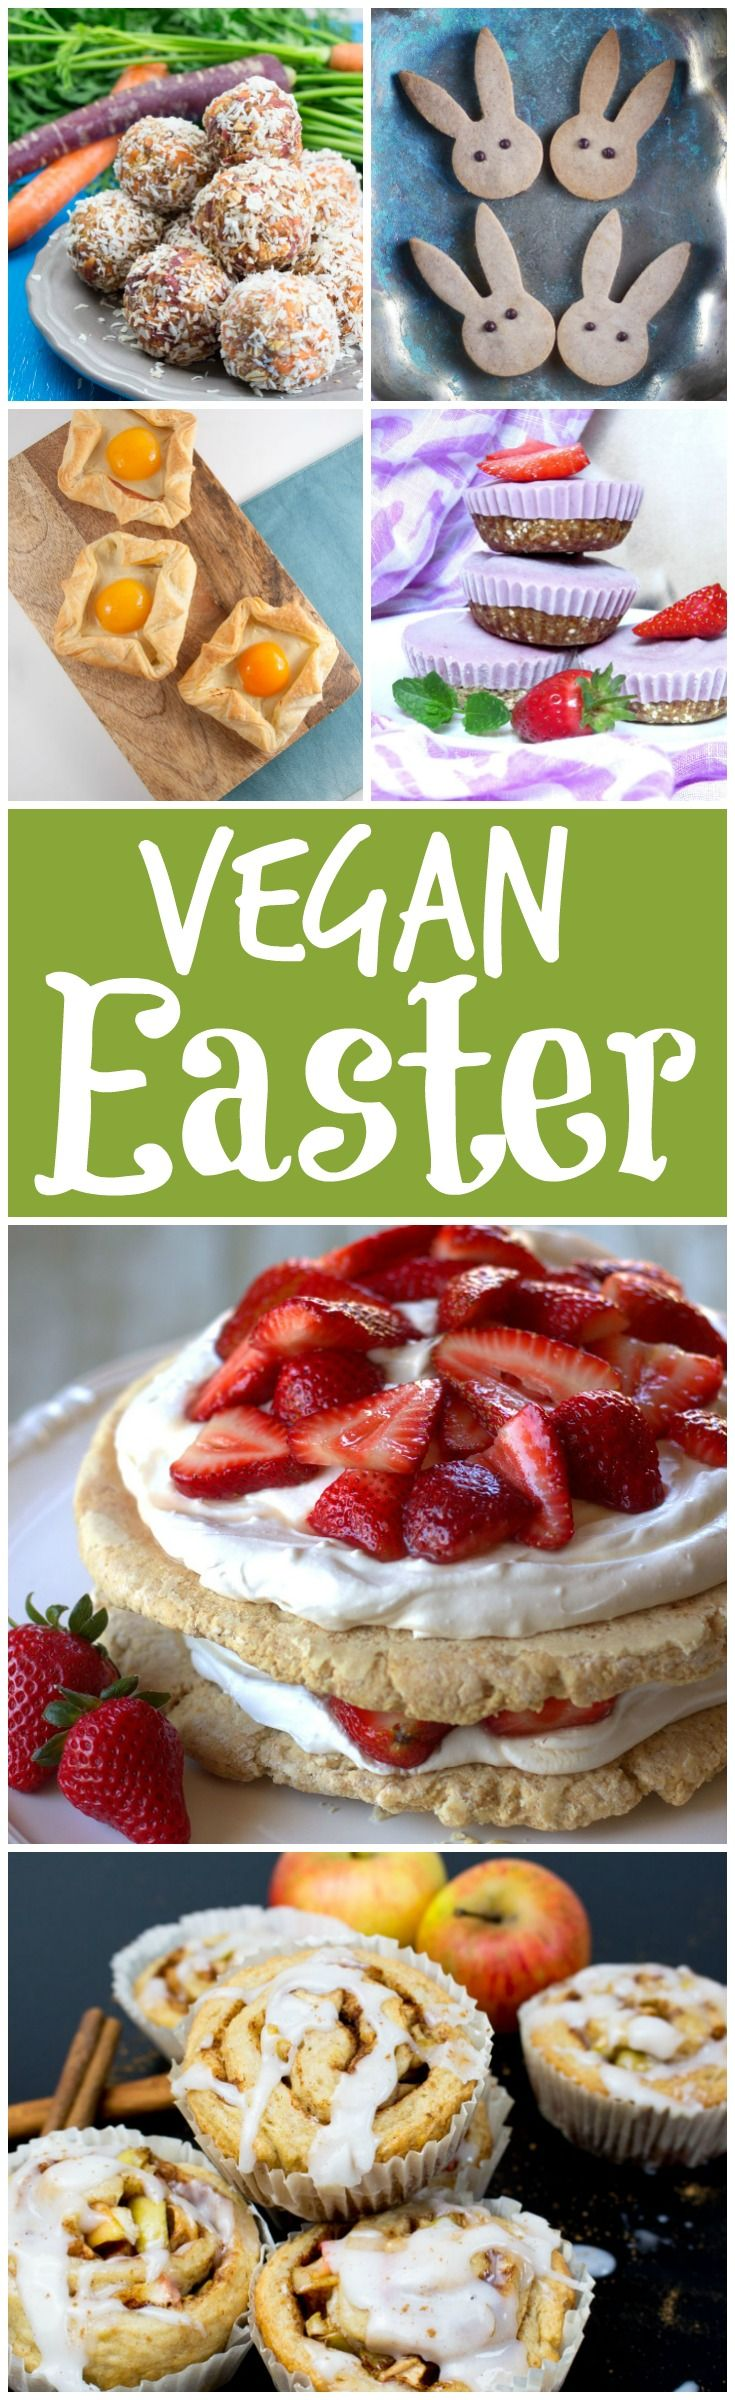 15 delicious vegan Easter recipes that will please the whole family! We've got you covered with breakfast ideas, snacks, desserts, and a couple of entrees. #vegan #Easter #spring #recipes #roundup